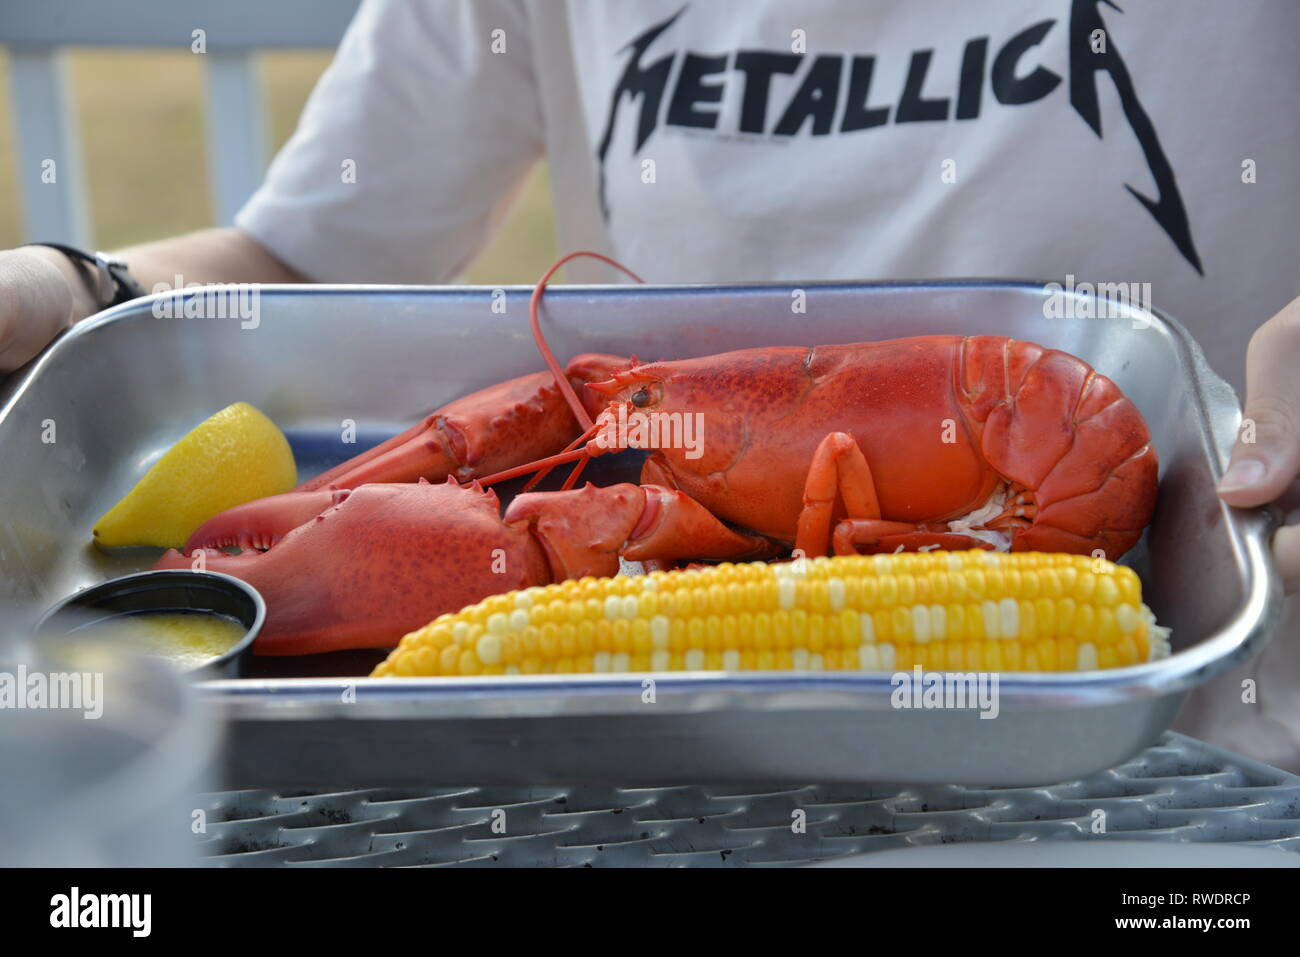 Super delicious looking lobster with corn in a metal pan, colorful, yummy - Stock Image